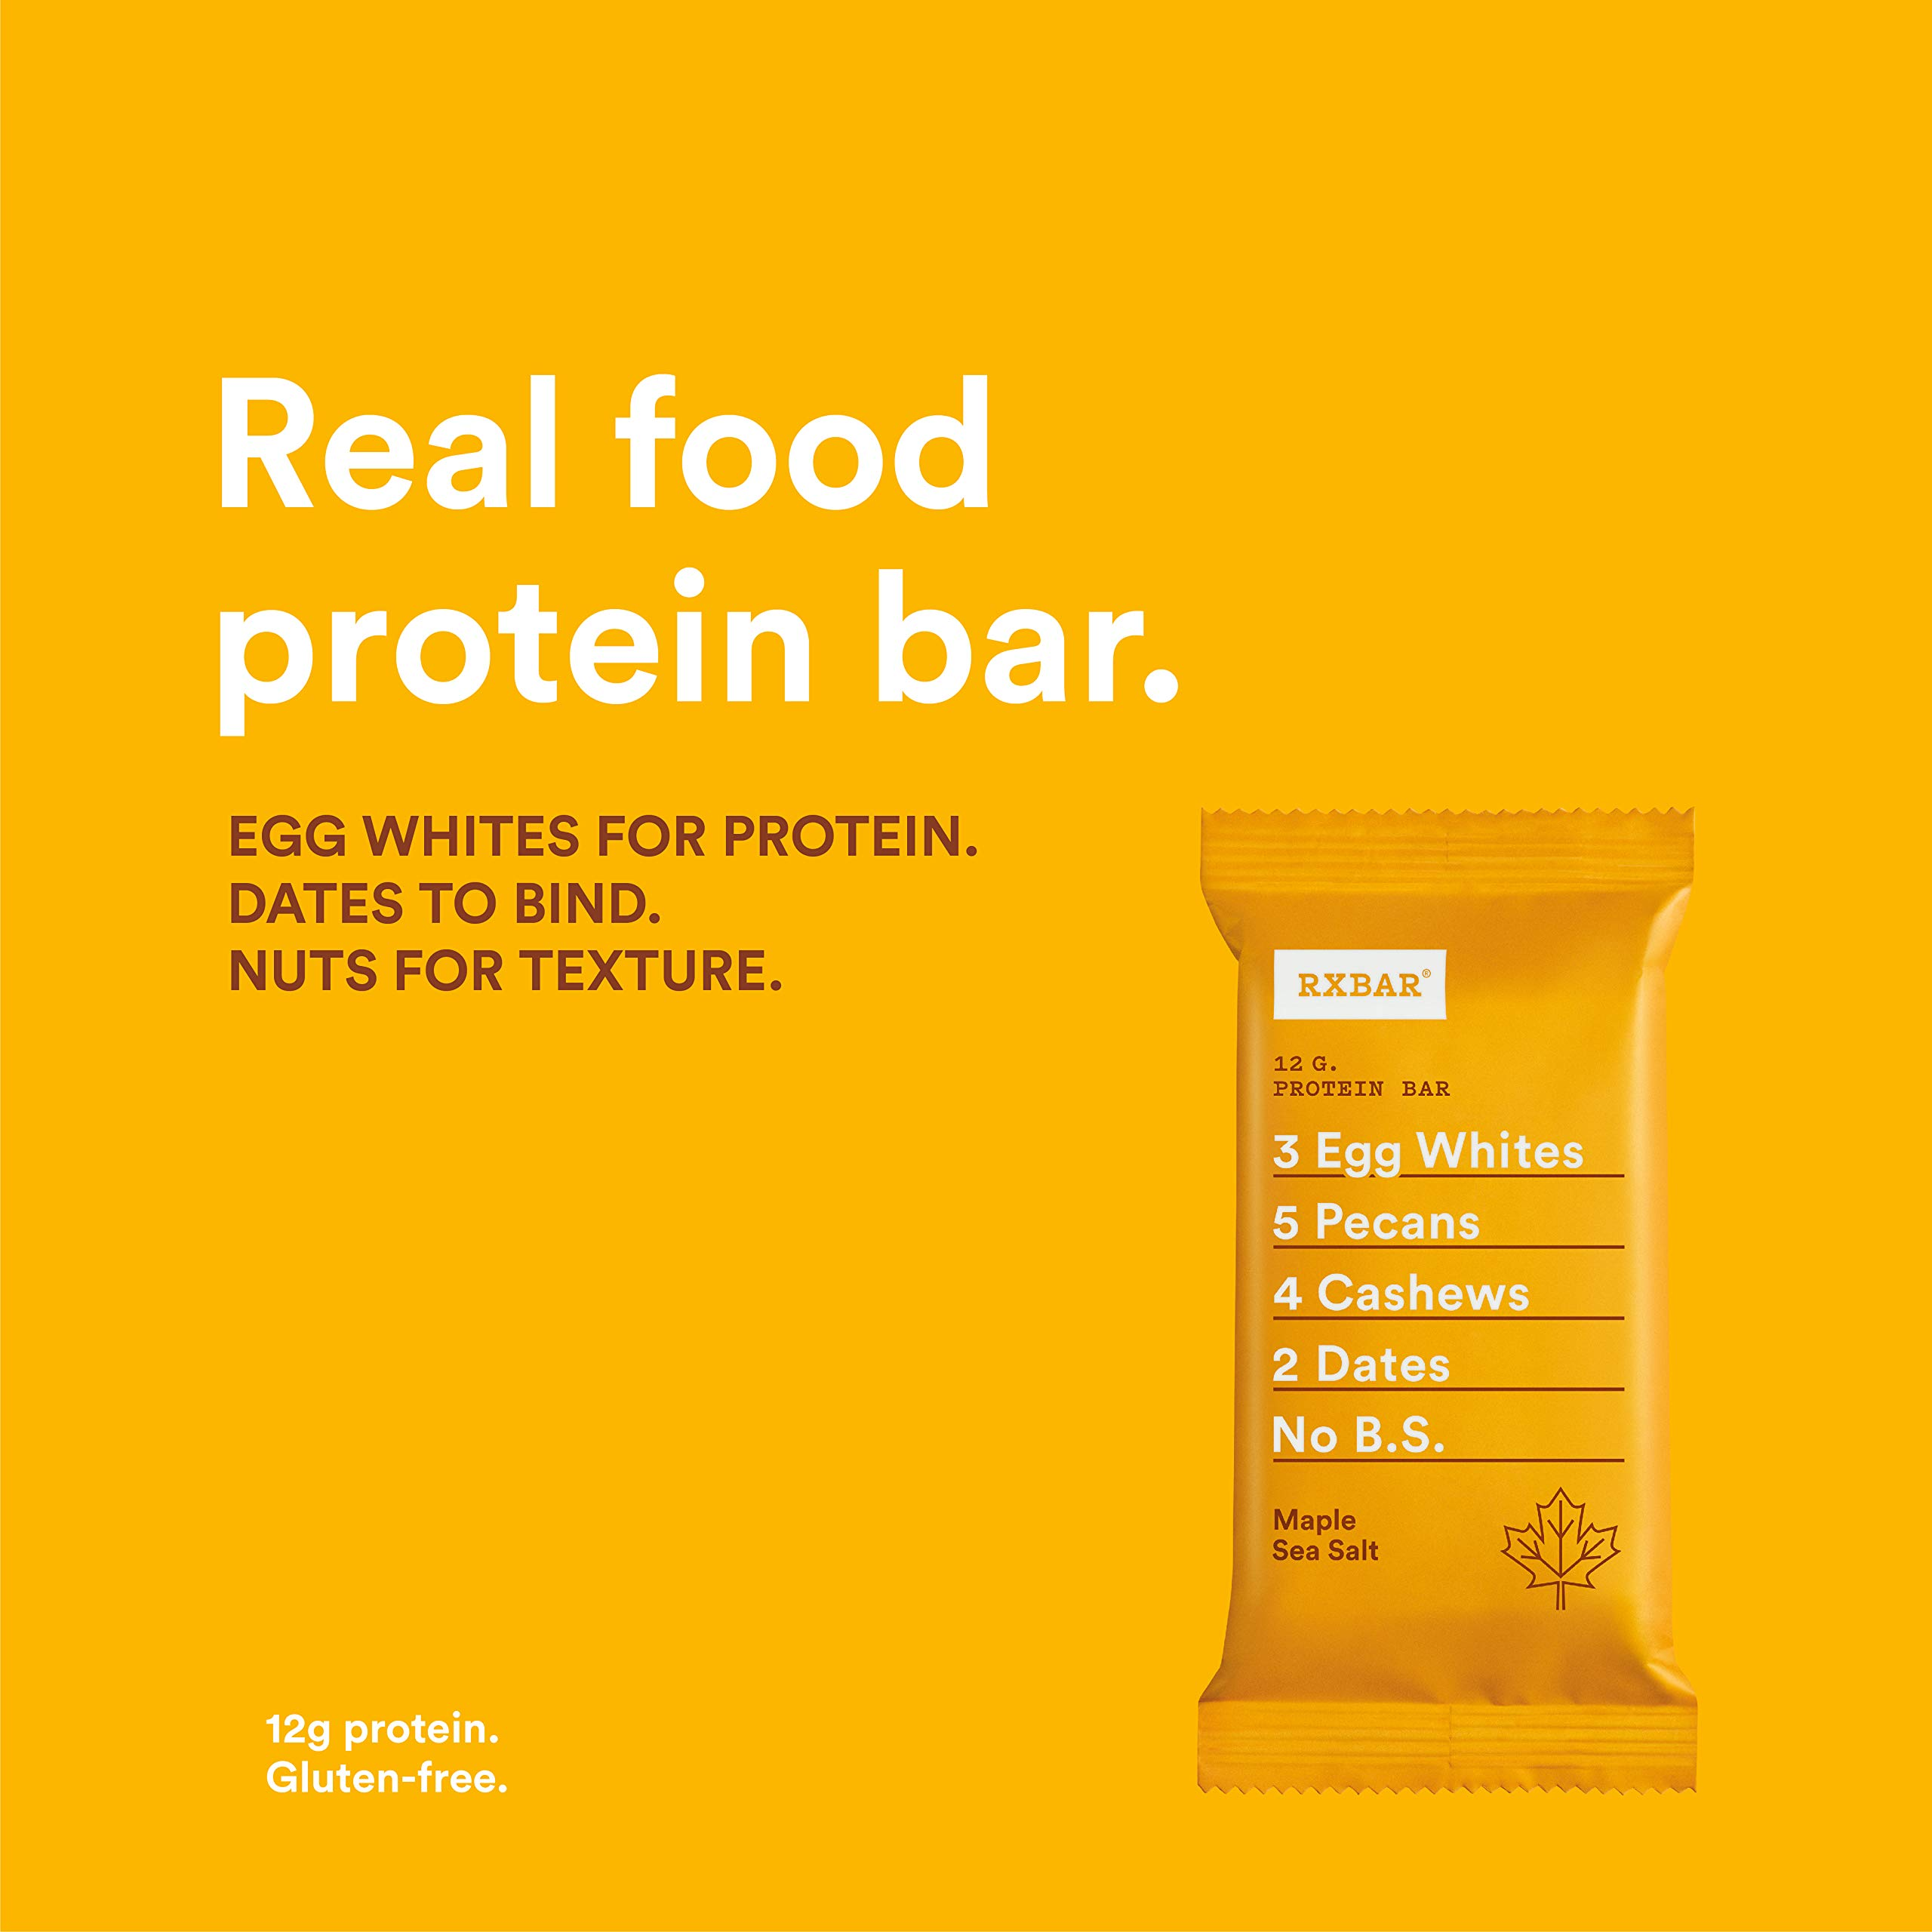 RXBAR Real Food Protein Bar, Maple Sea Salt, Gluten Free, 1.83oz Bars, 24 Count by RXBAR (Image #3)